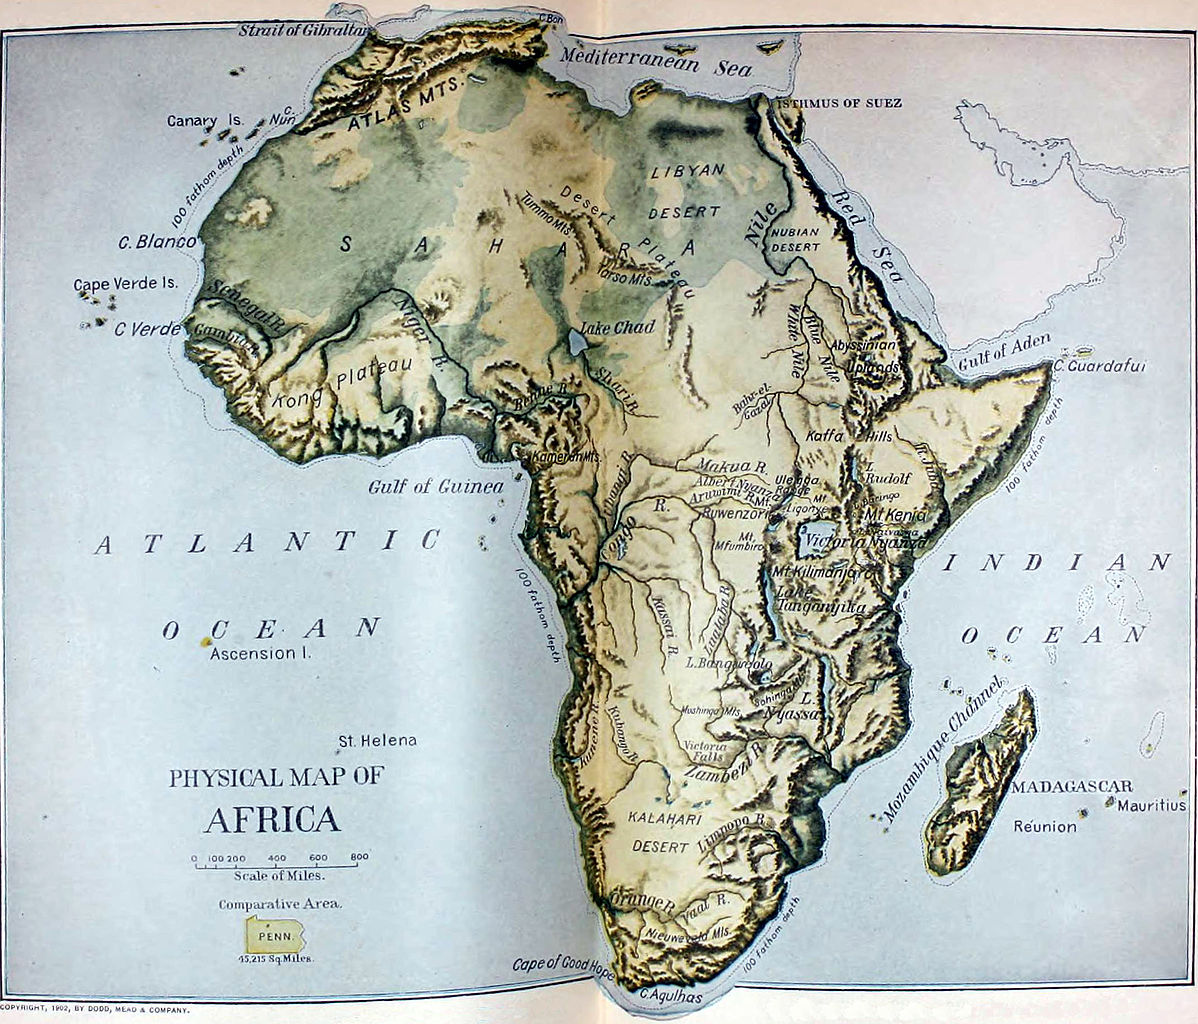 FileNIE 1905 Africa physical mapjpg Wikimedia Commons